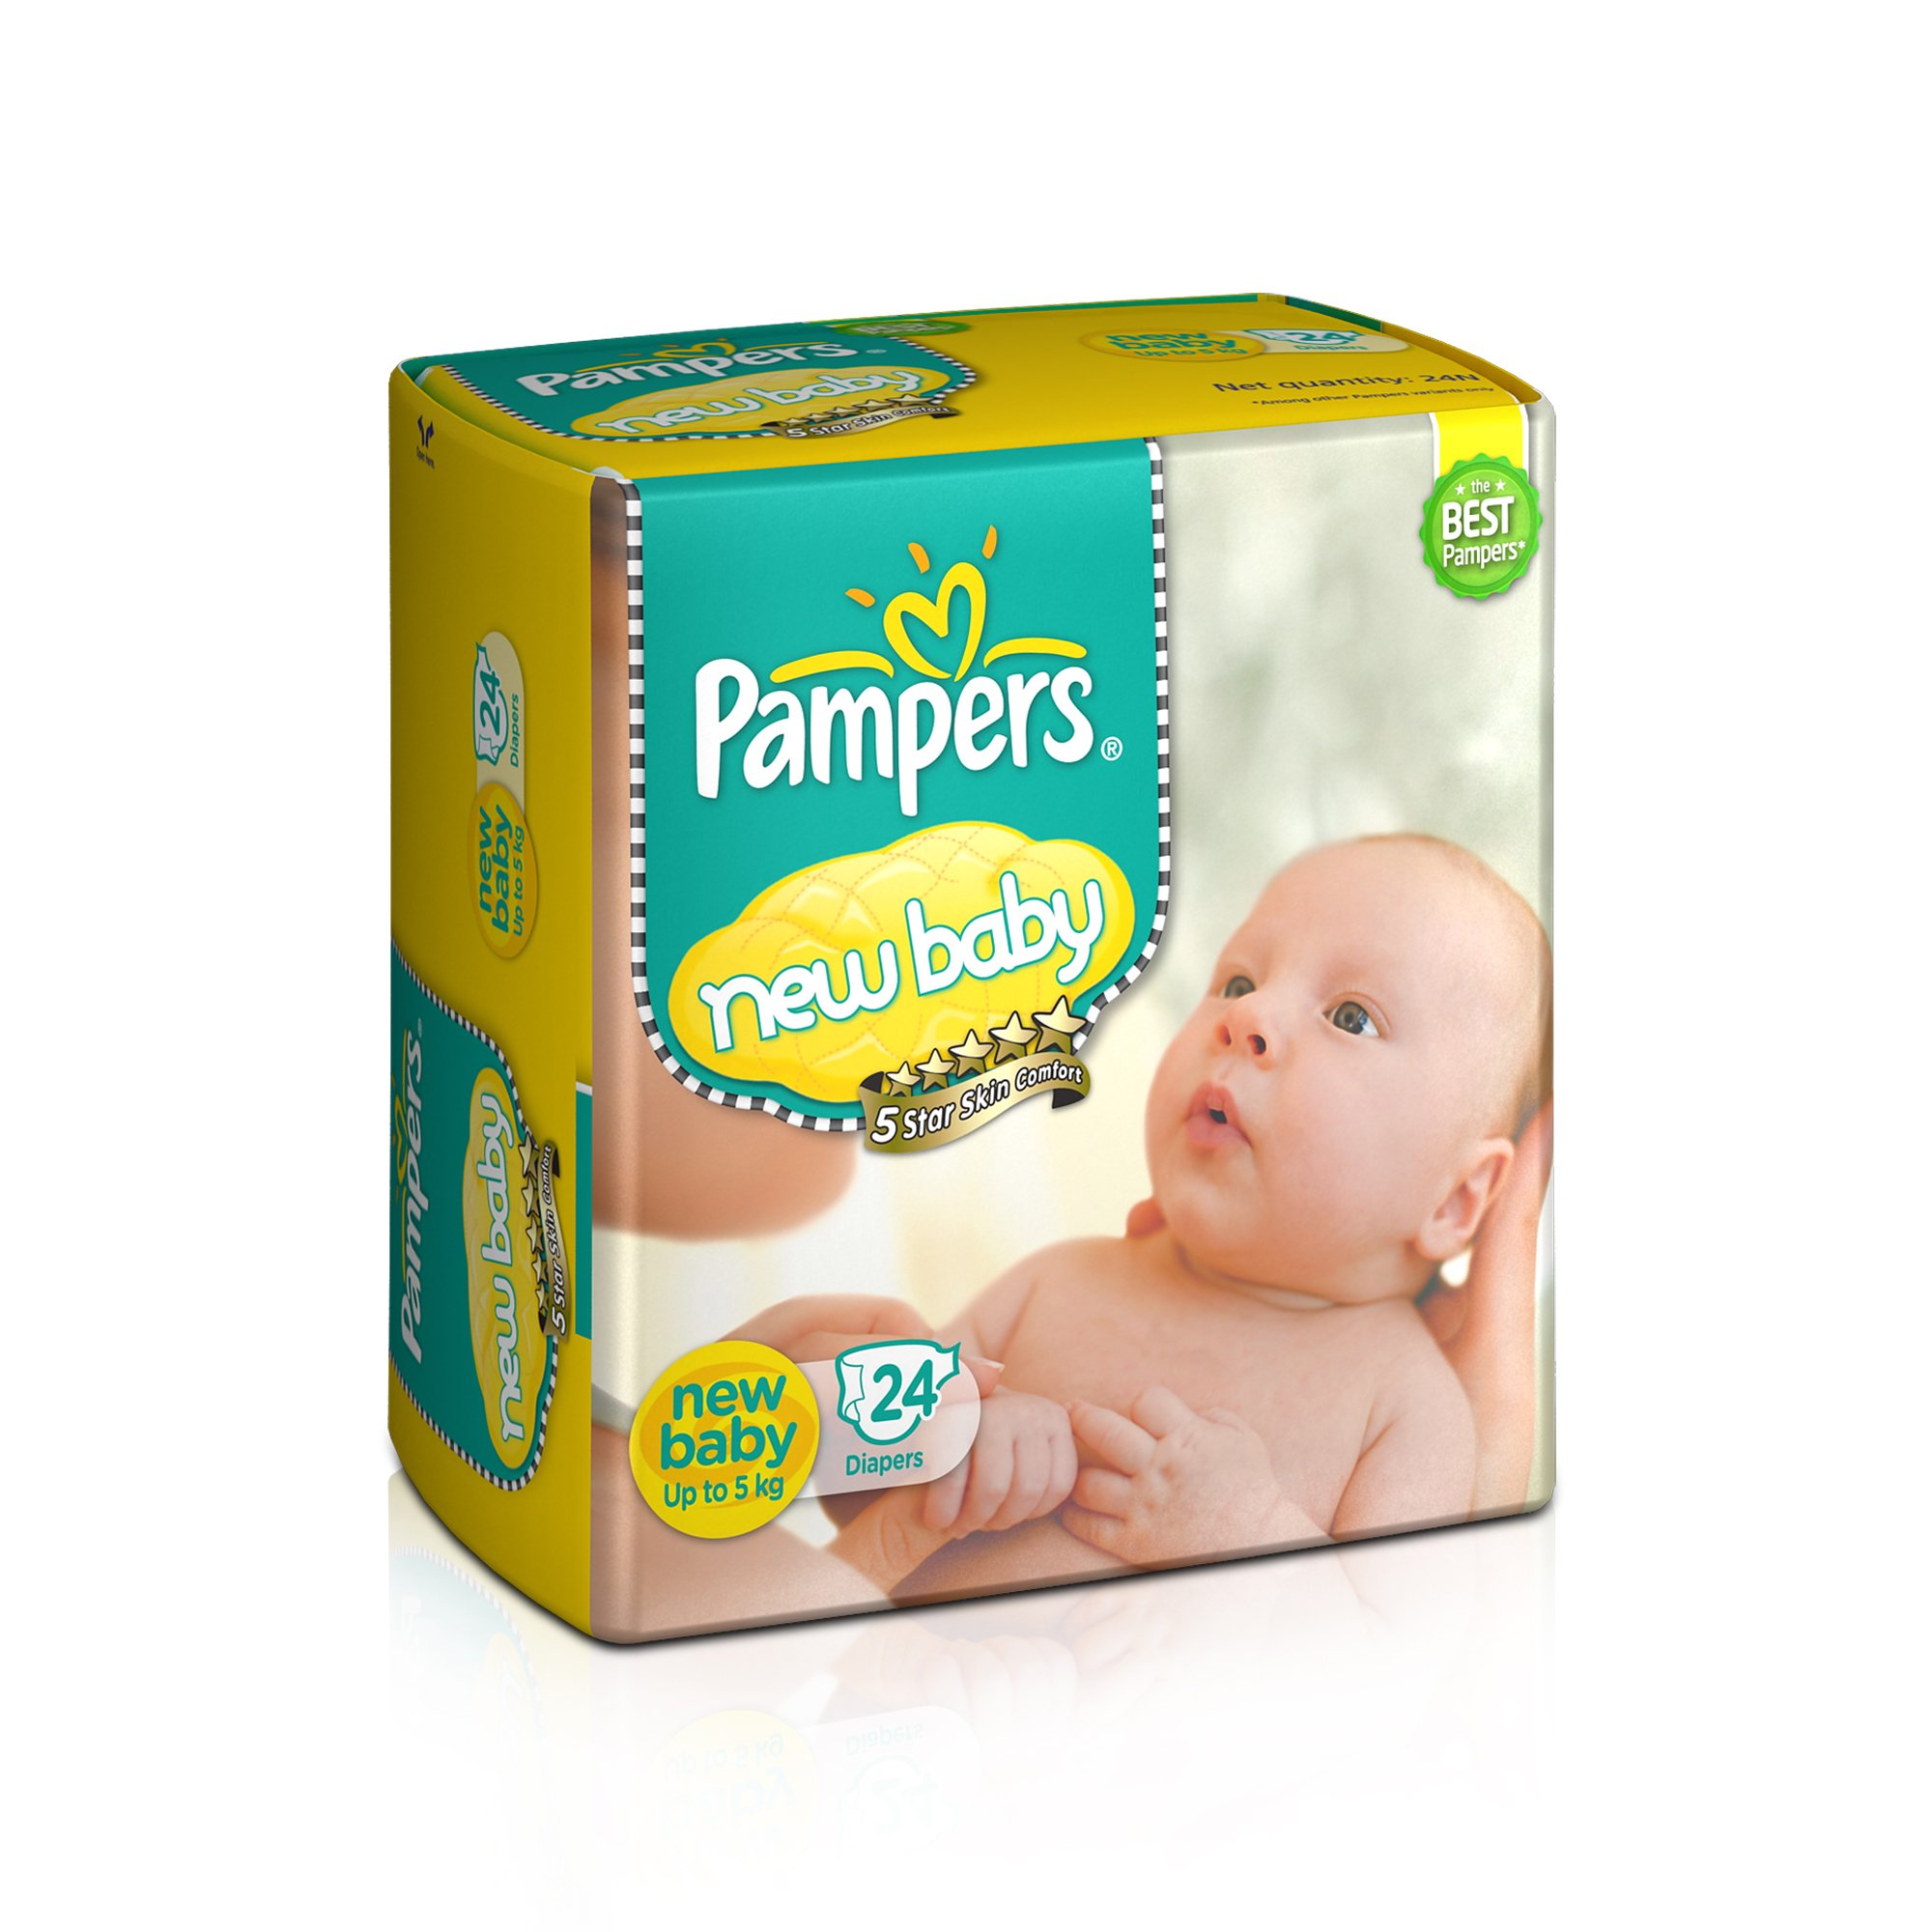 Pampers New Baby Diapers (24 Count) product image